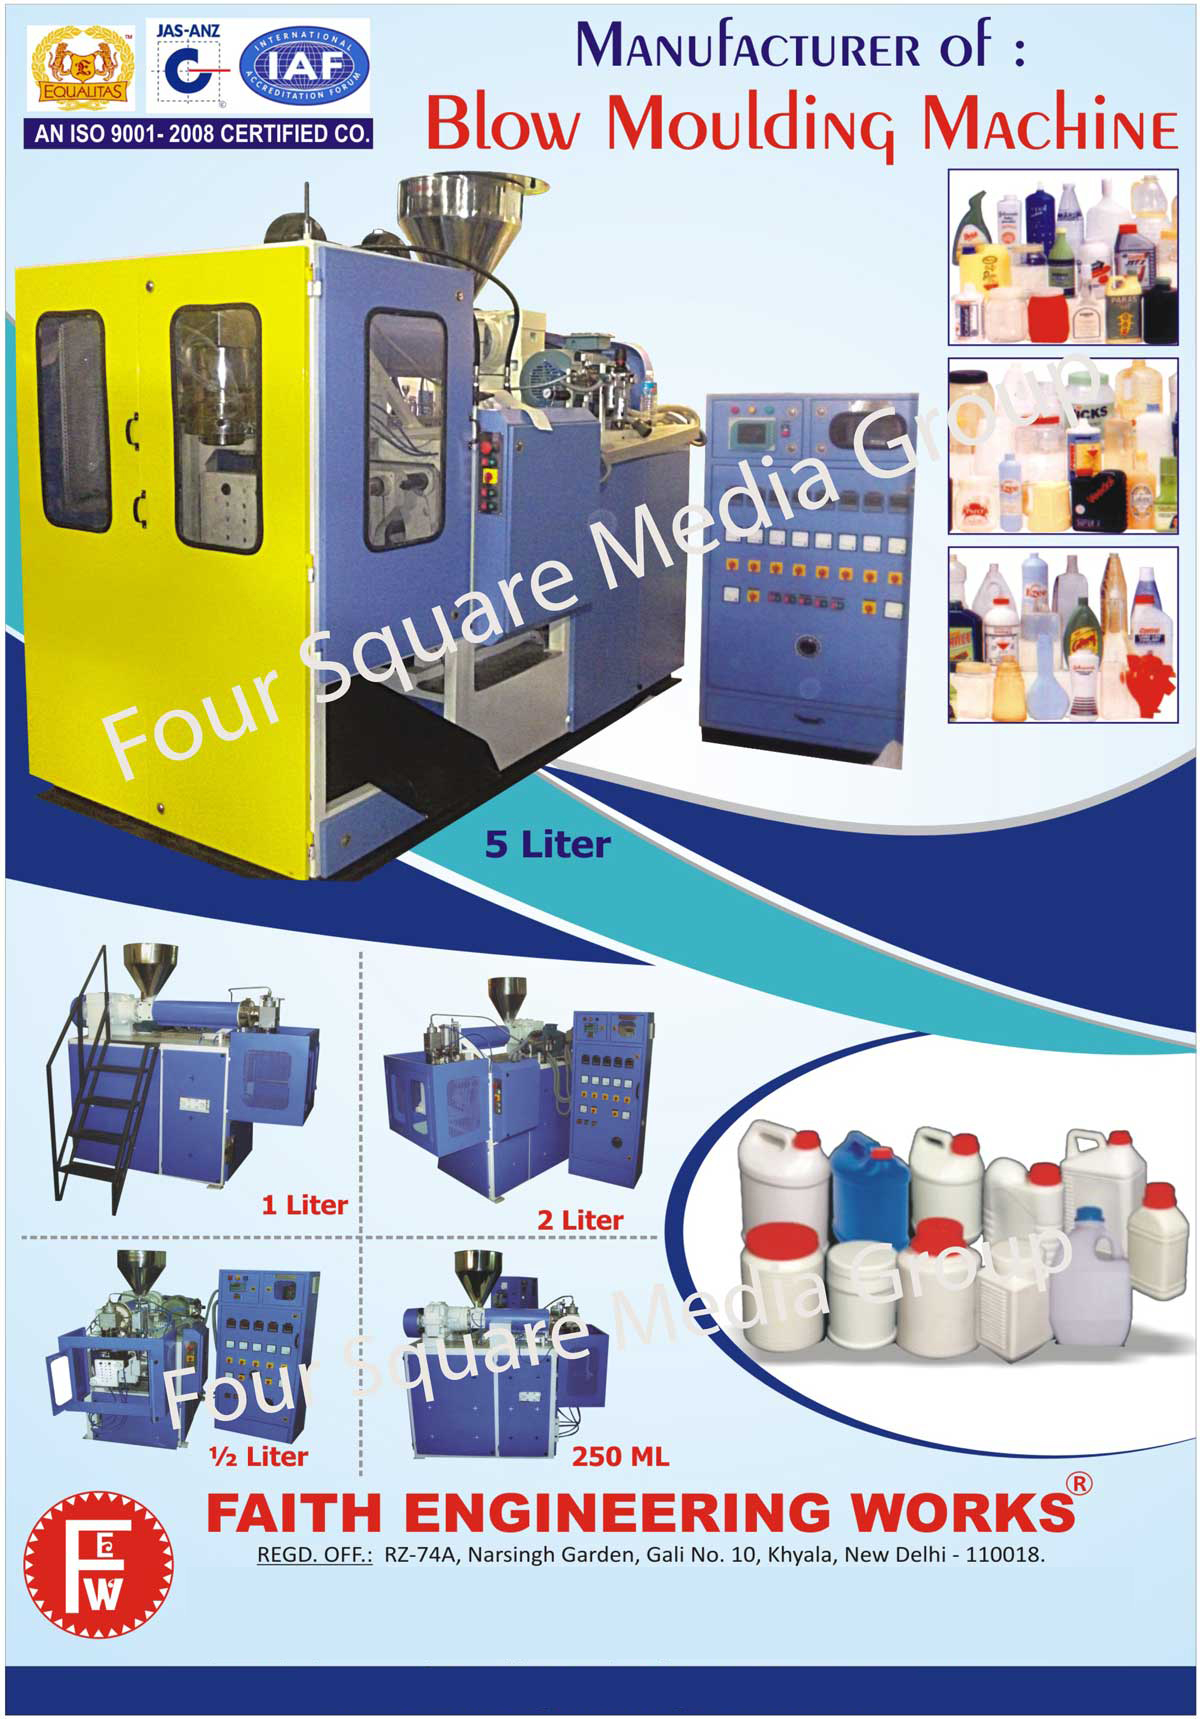 Blow Moulding Machines, Book Binding Machine, Injection Moulding Machine, Moulds, Color Mixer, Hopper Loader, Chilling Plant, Scrape Grinder, Air Compressor, Cooling Tower